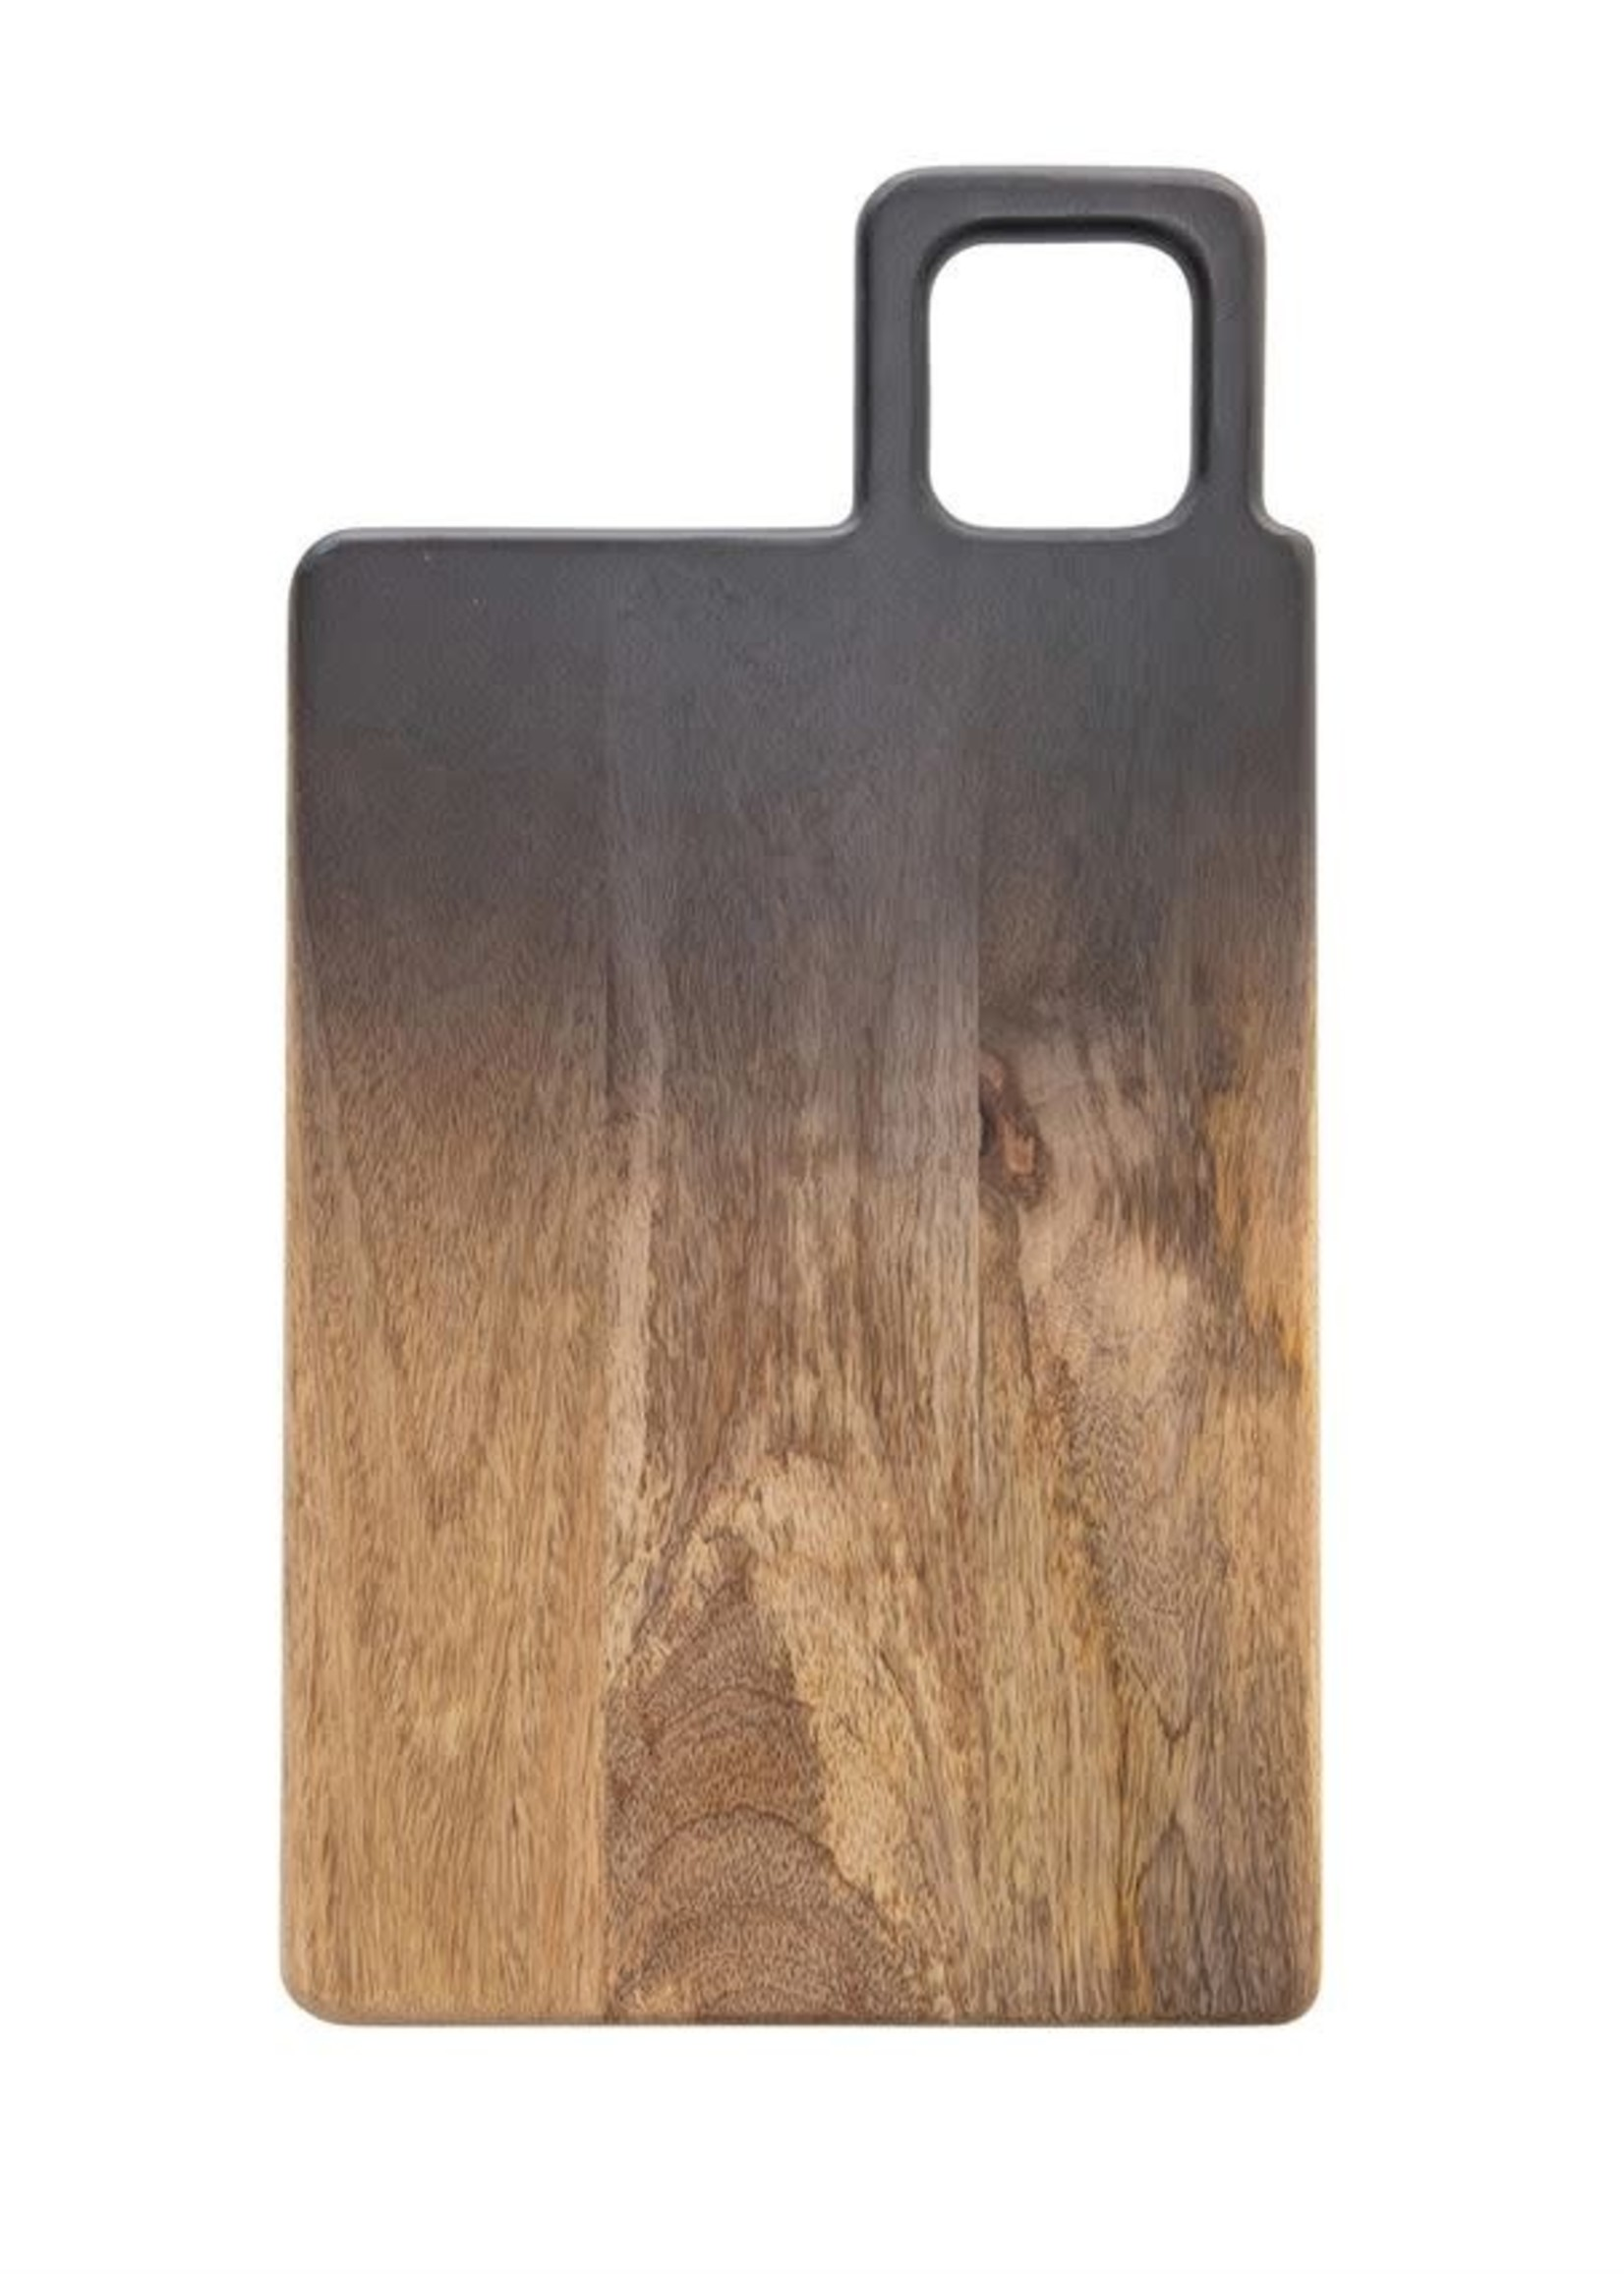 Mango Wood Cheese/Cutting Board with Handle, Black & Natural Ombre